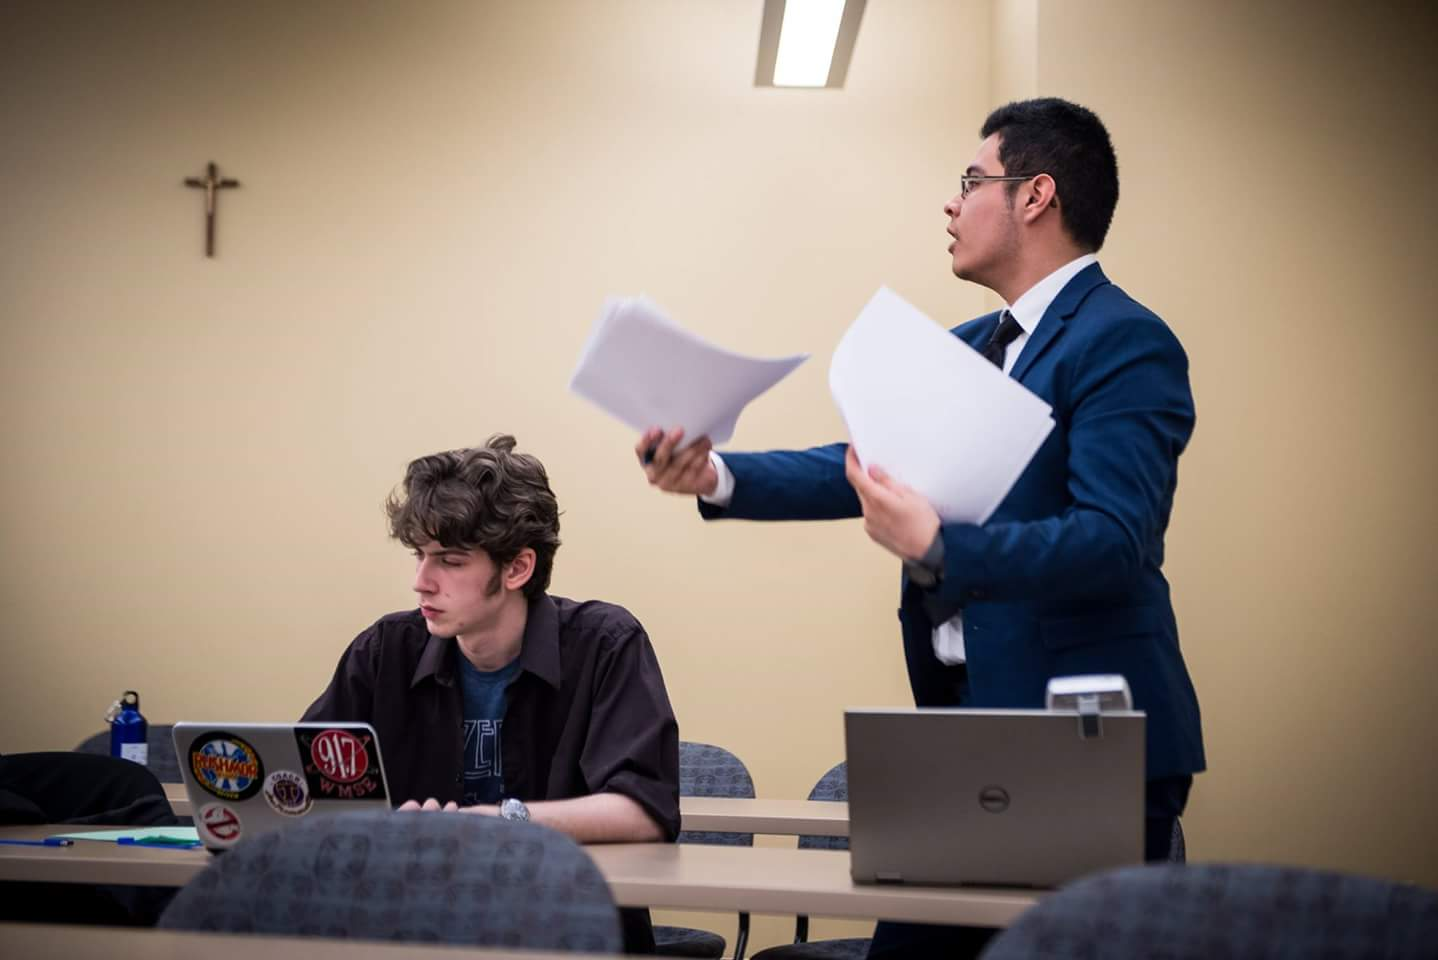 Daniel Montalvo (right) at the Urban Debate National Championship last year with his partner Harrison Tremarello. Photo courtesy of Daniel Montalvo.